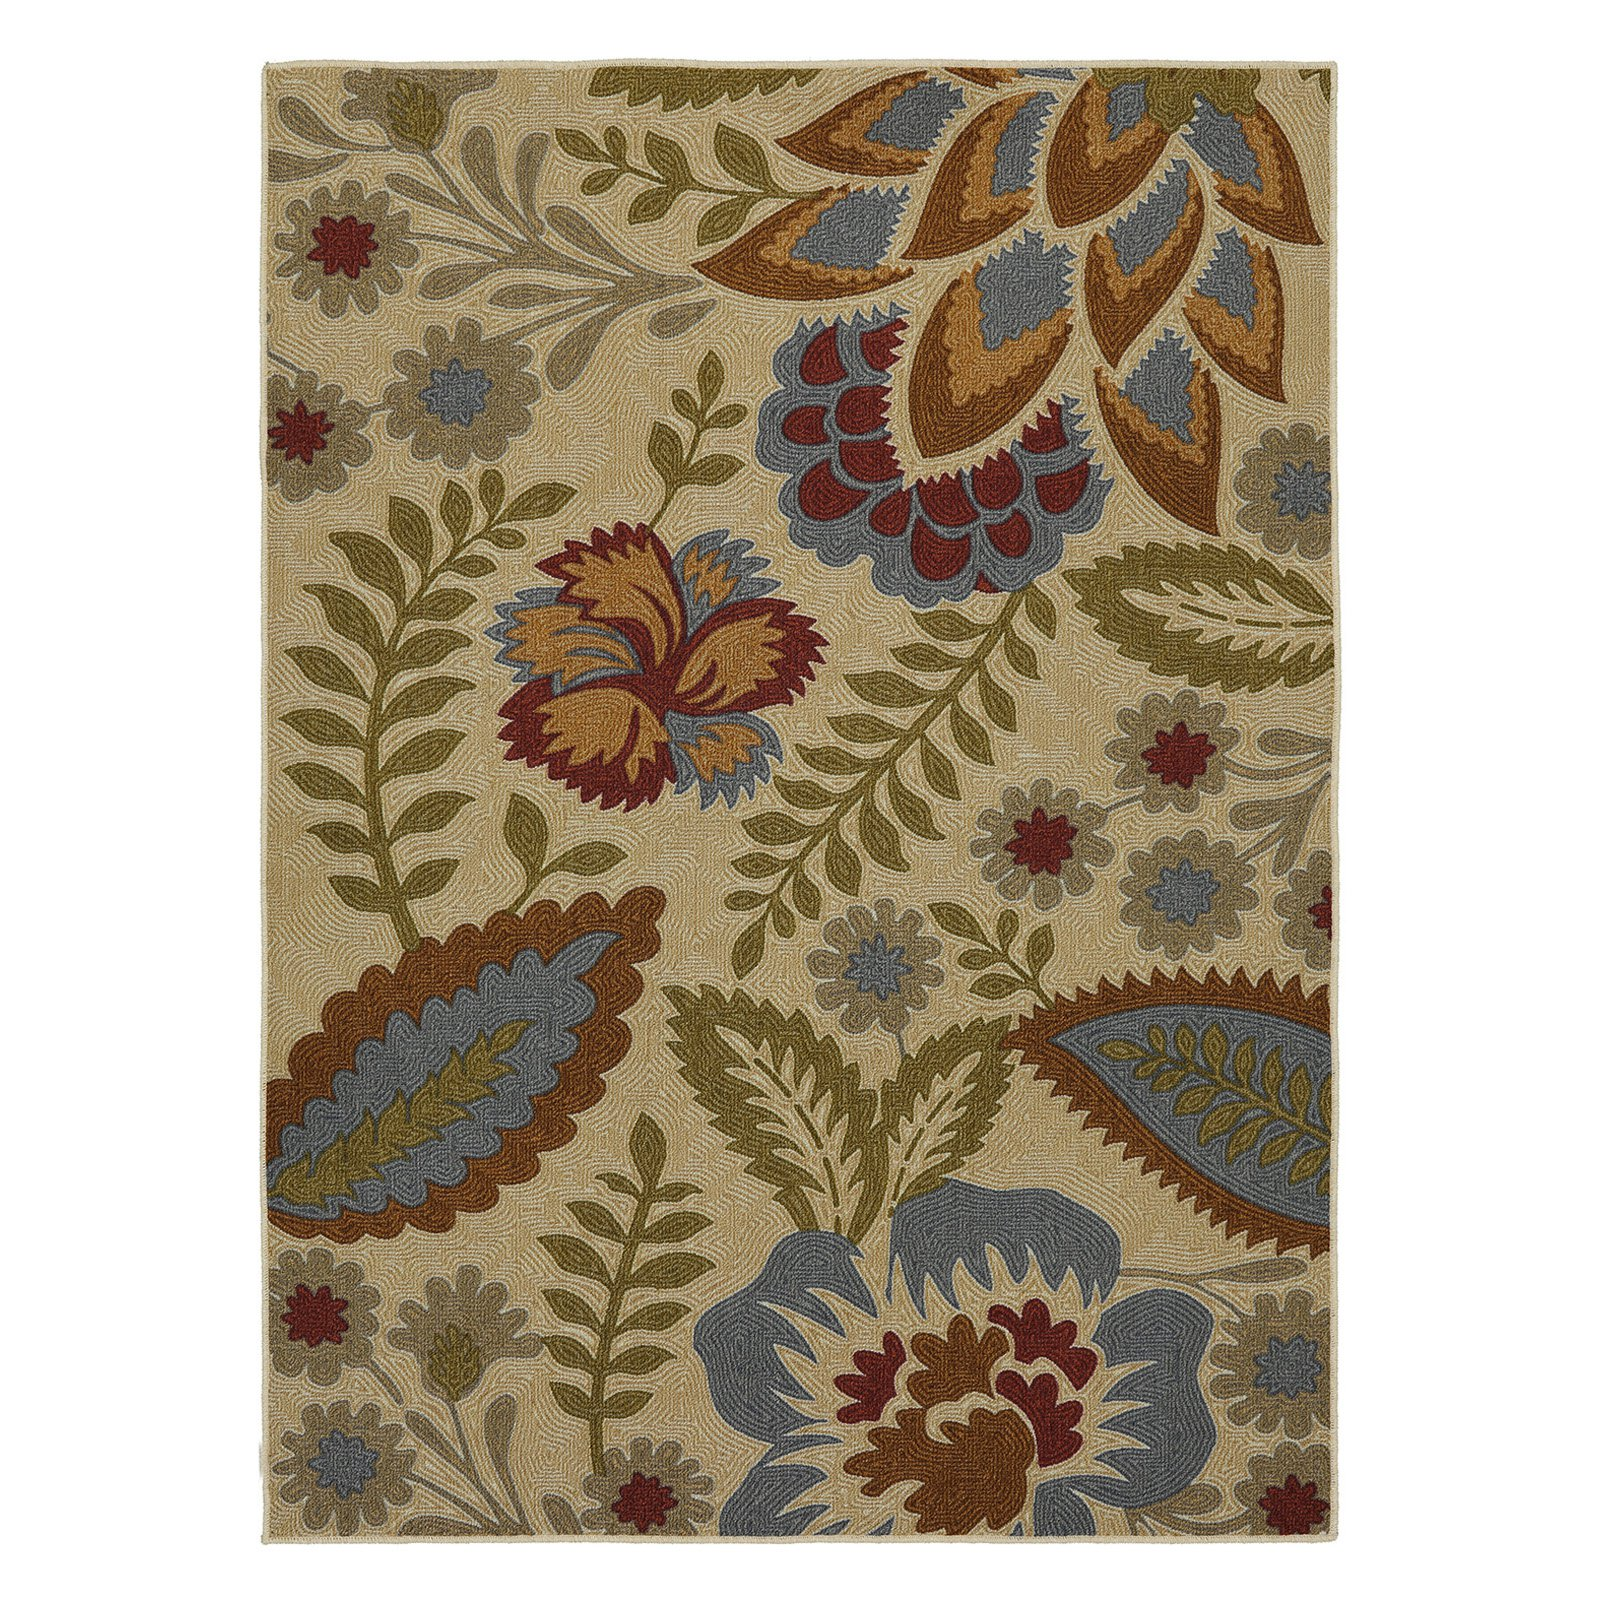 Mohawk Home Soho Crewel Floral Spice Area Rug (5'x7') by Mohawk Home